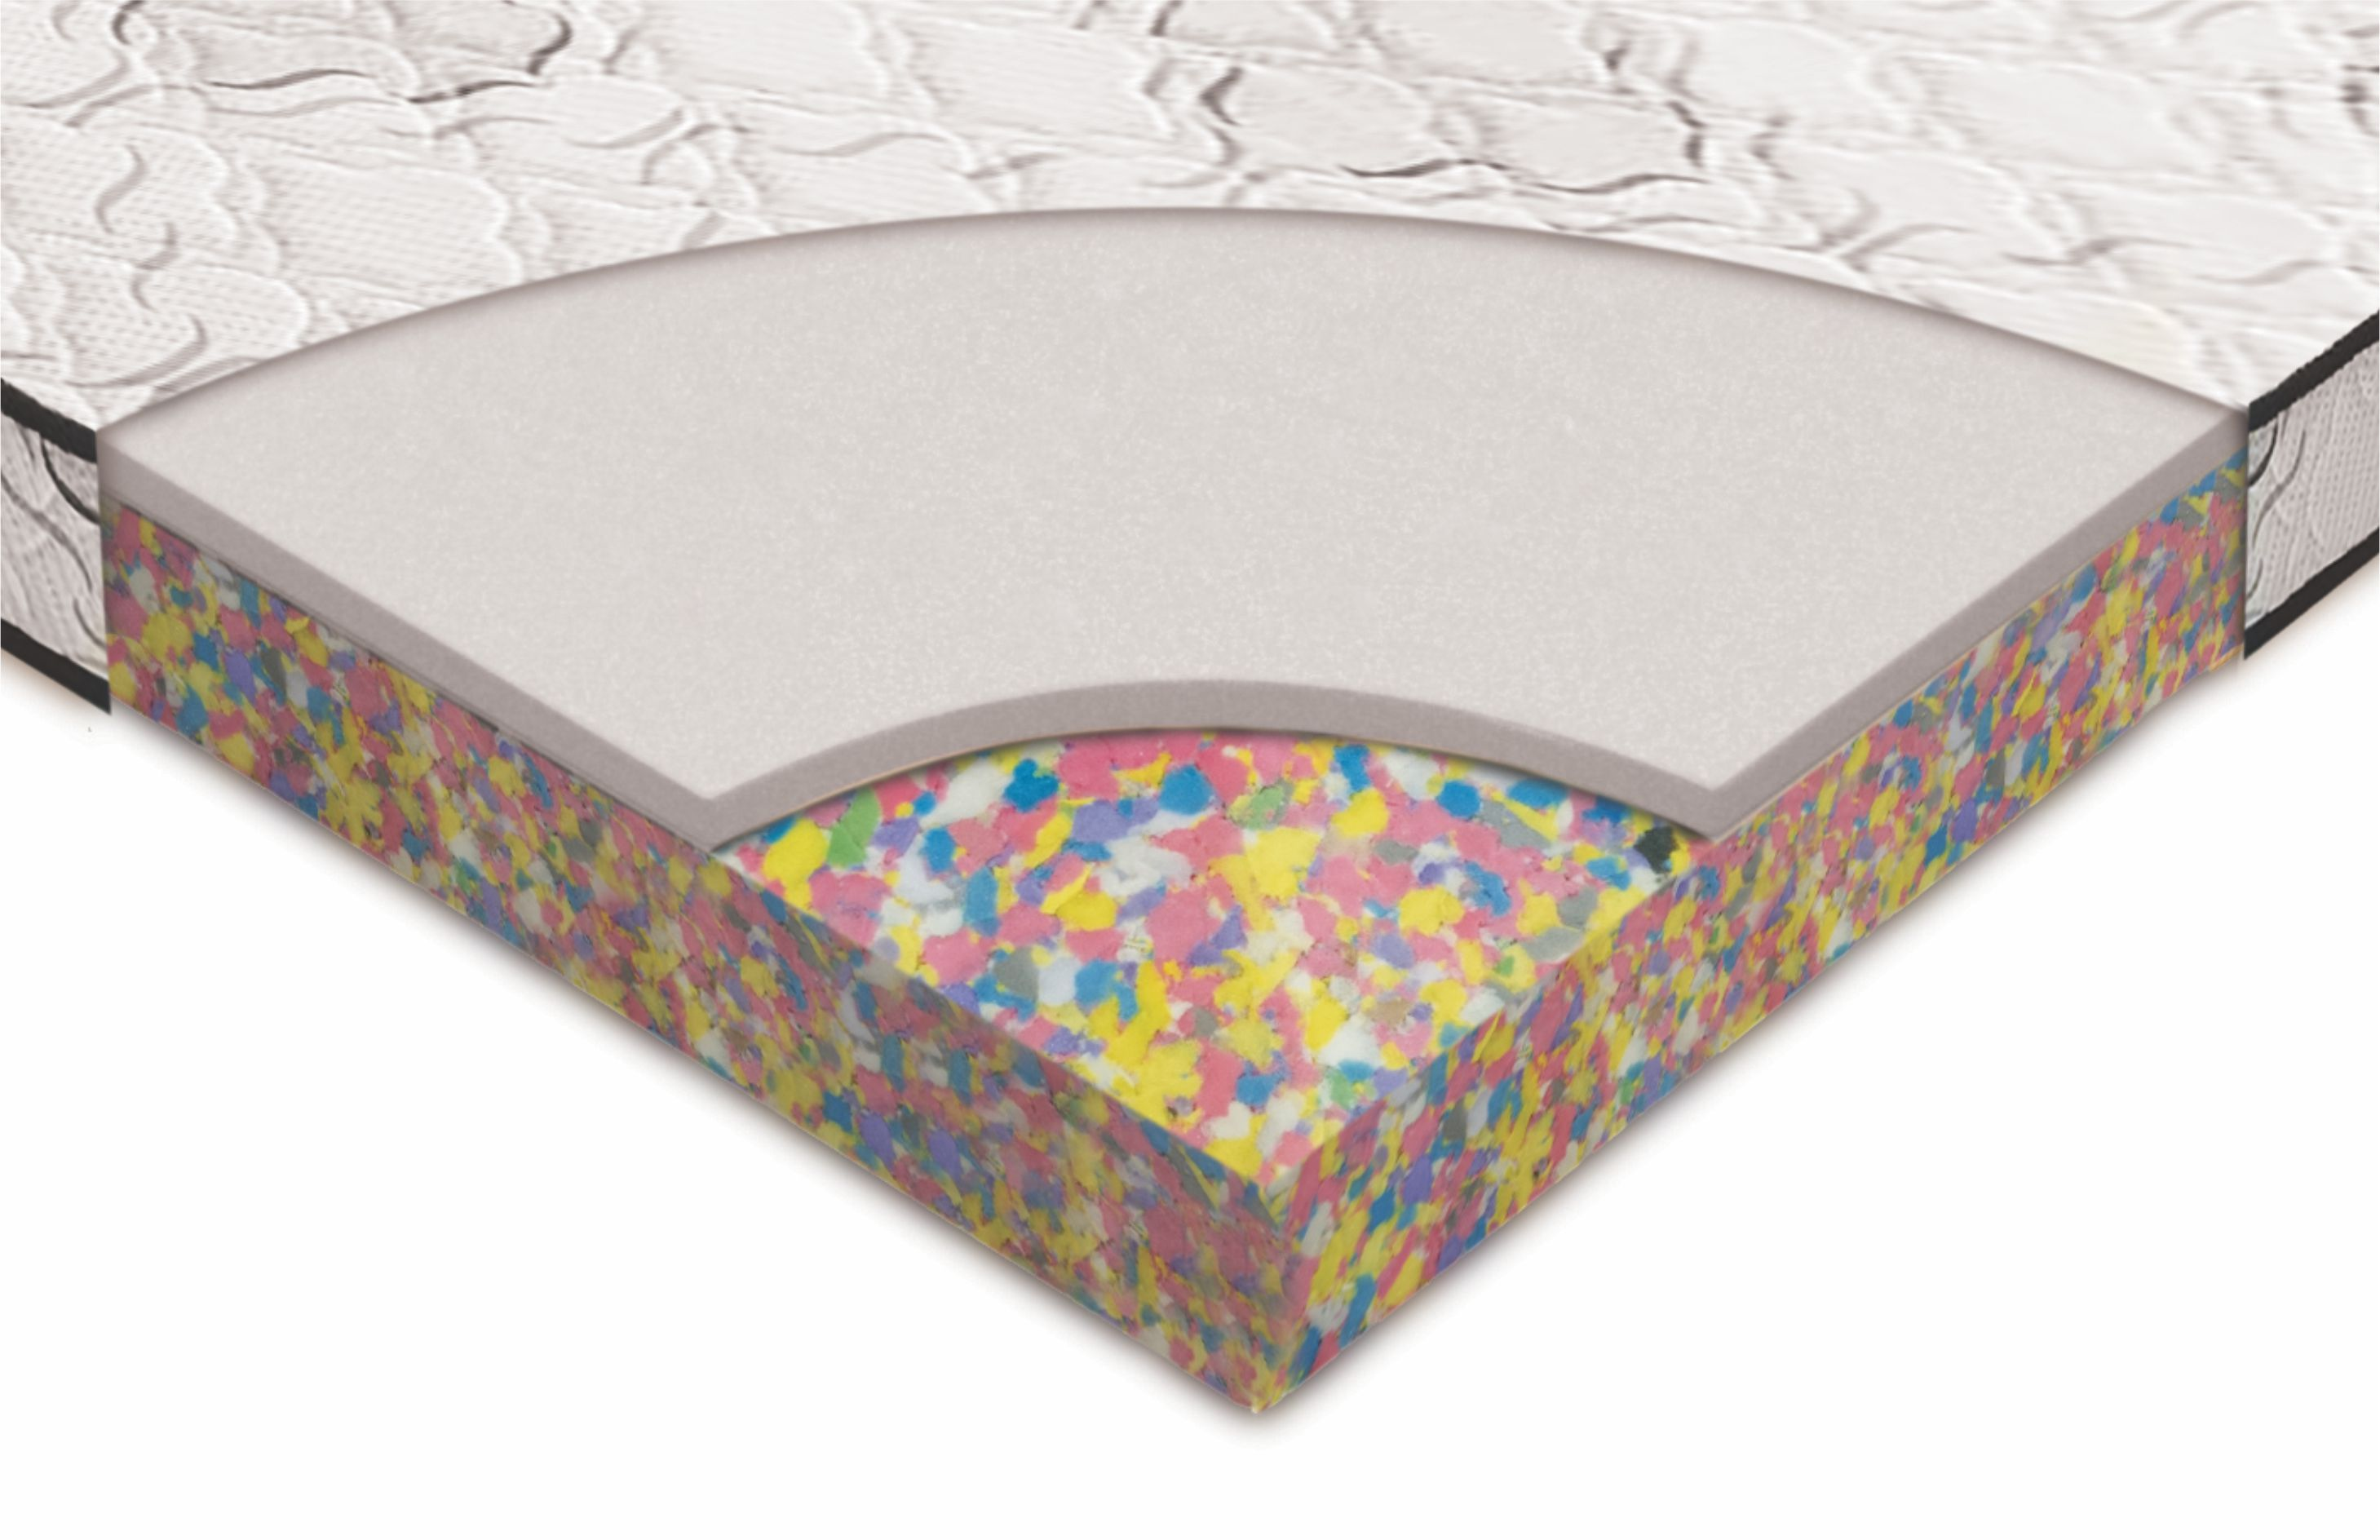 5 Bonded With Hr Foam Mattress Magenta